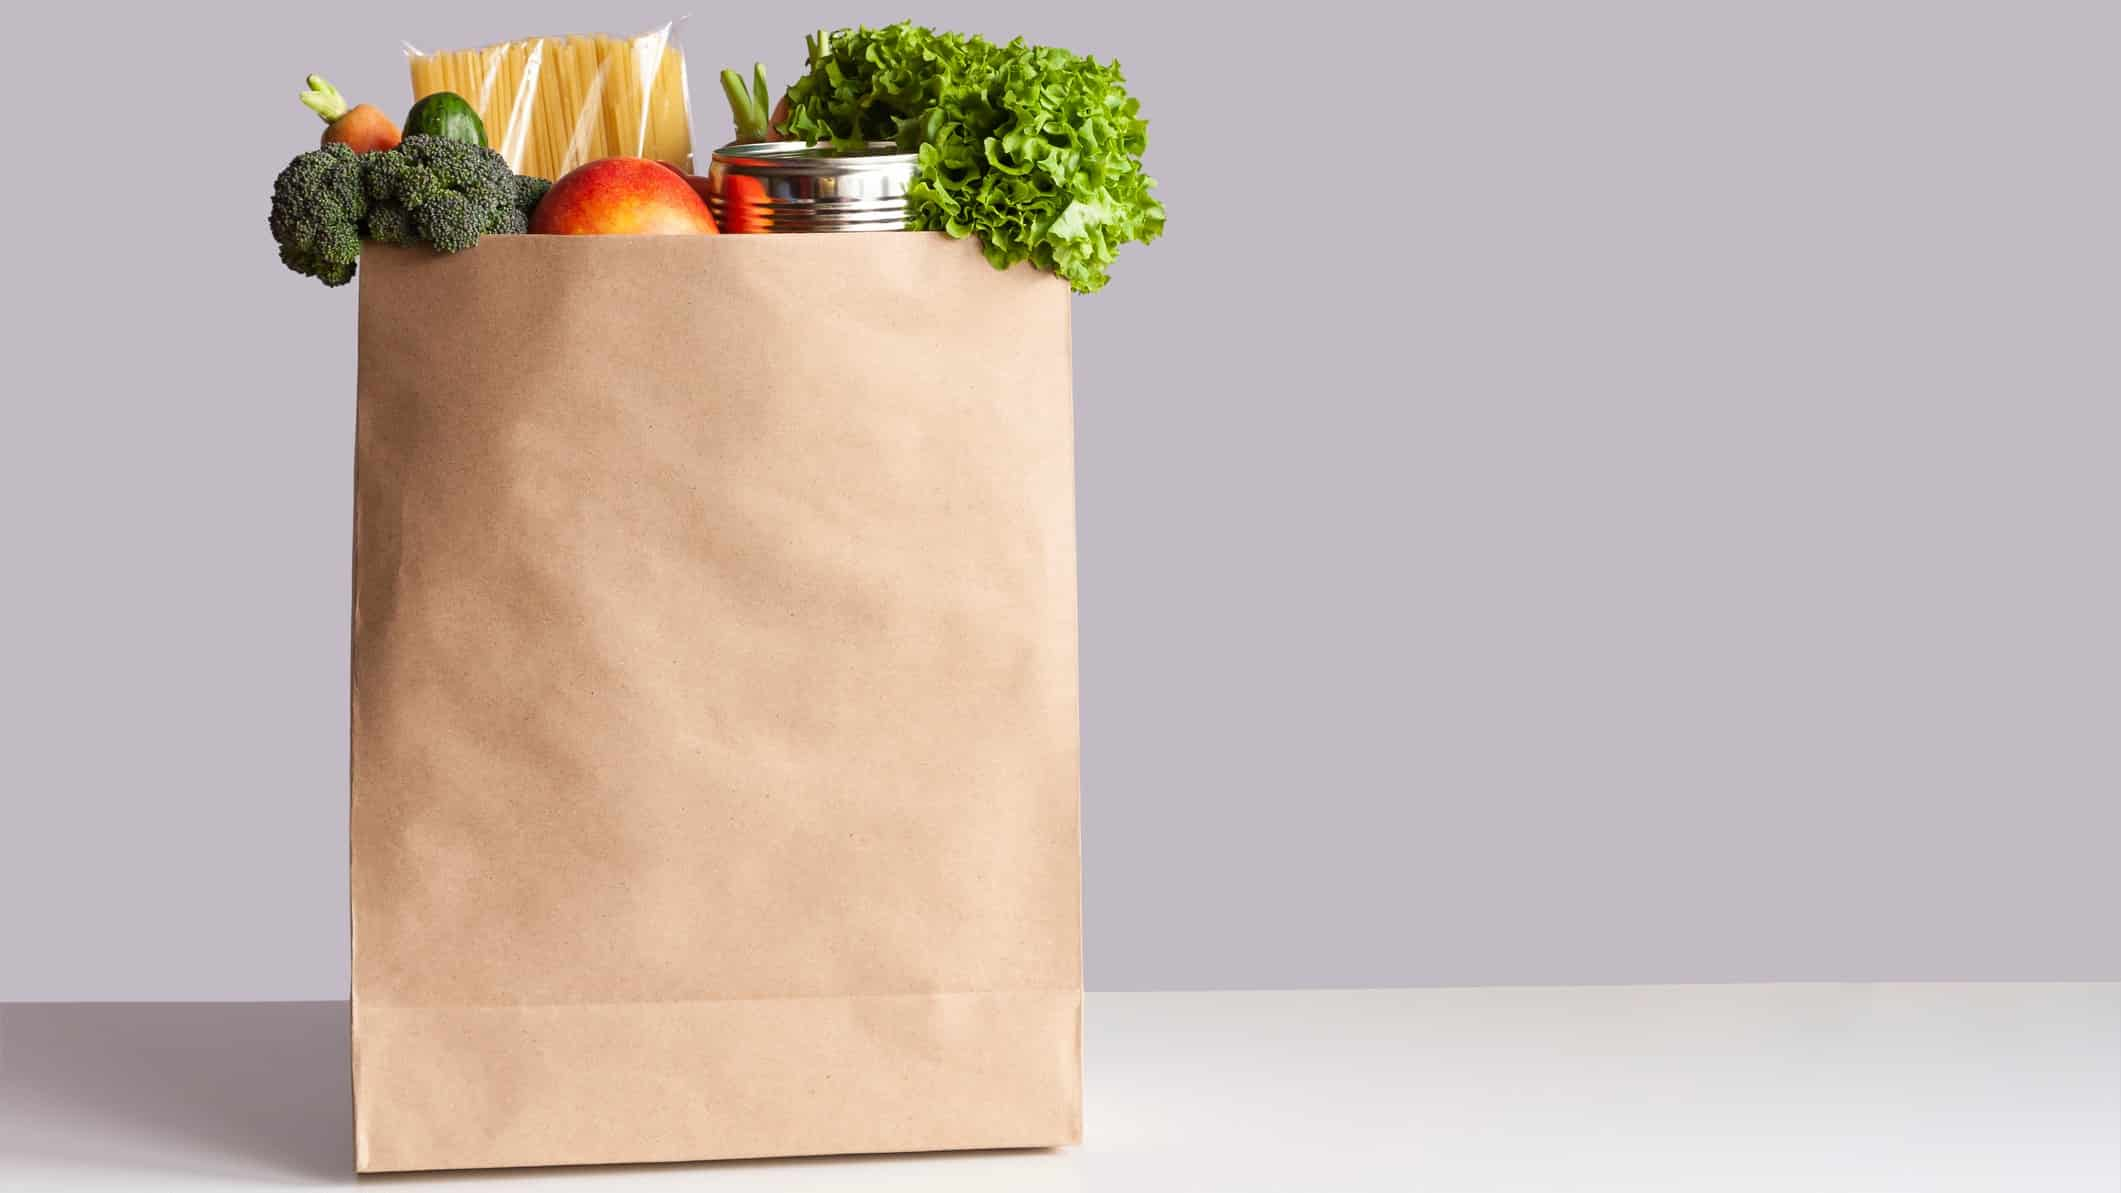 paper bag filled with fresh food representing marley spoon share price